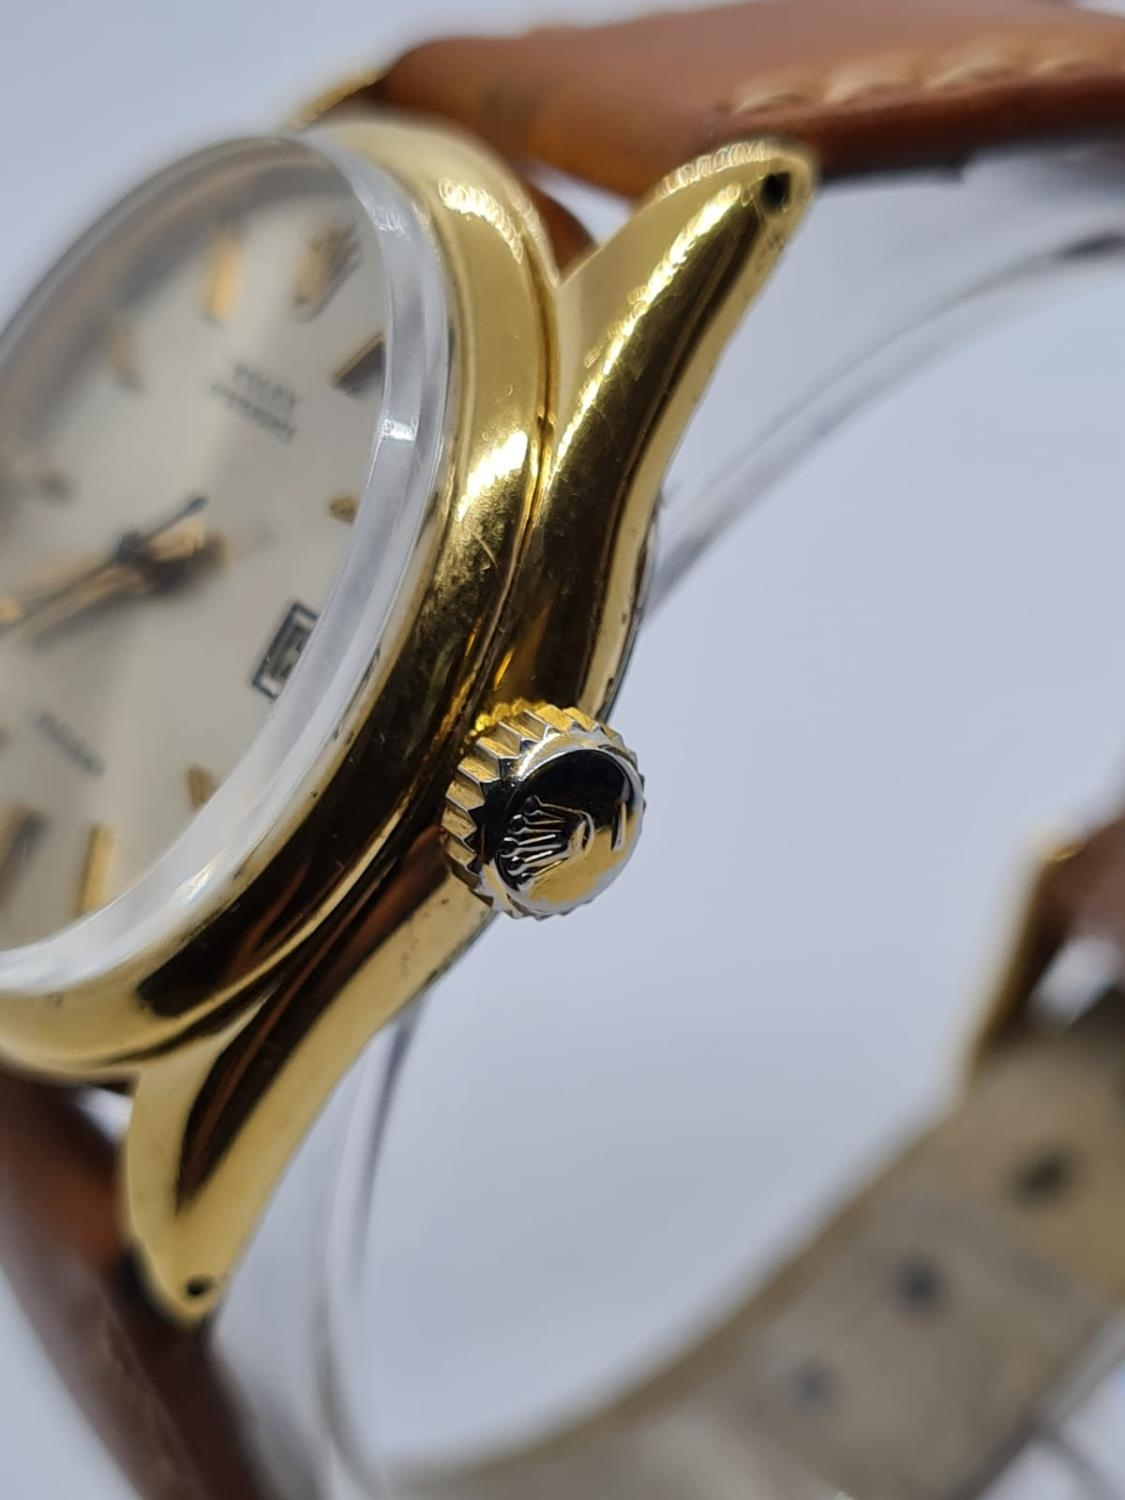 Vintage Rolex Oysterdate Precision Gents WATCH. Round face and genuine brown leather strap. 32mm - Image 3 of 5